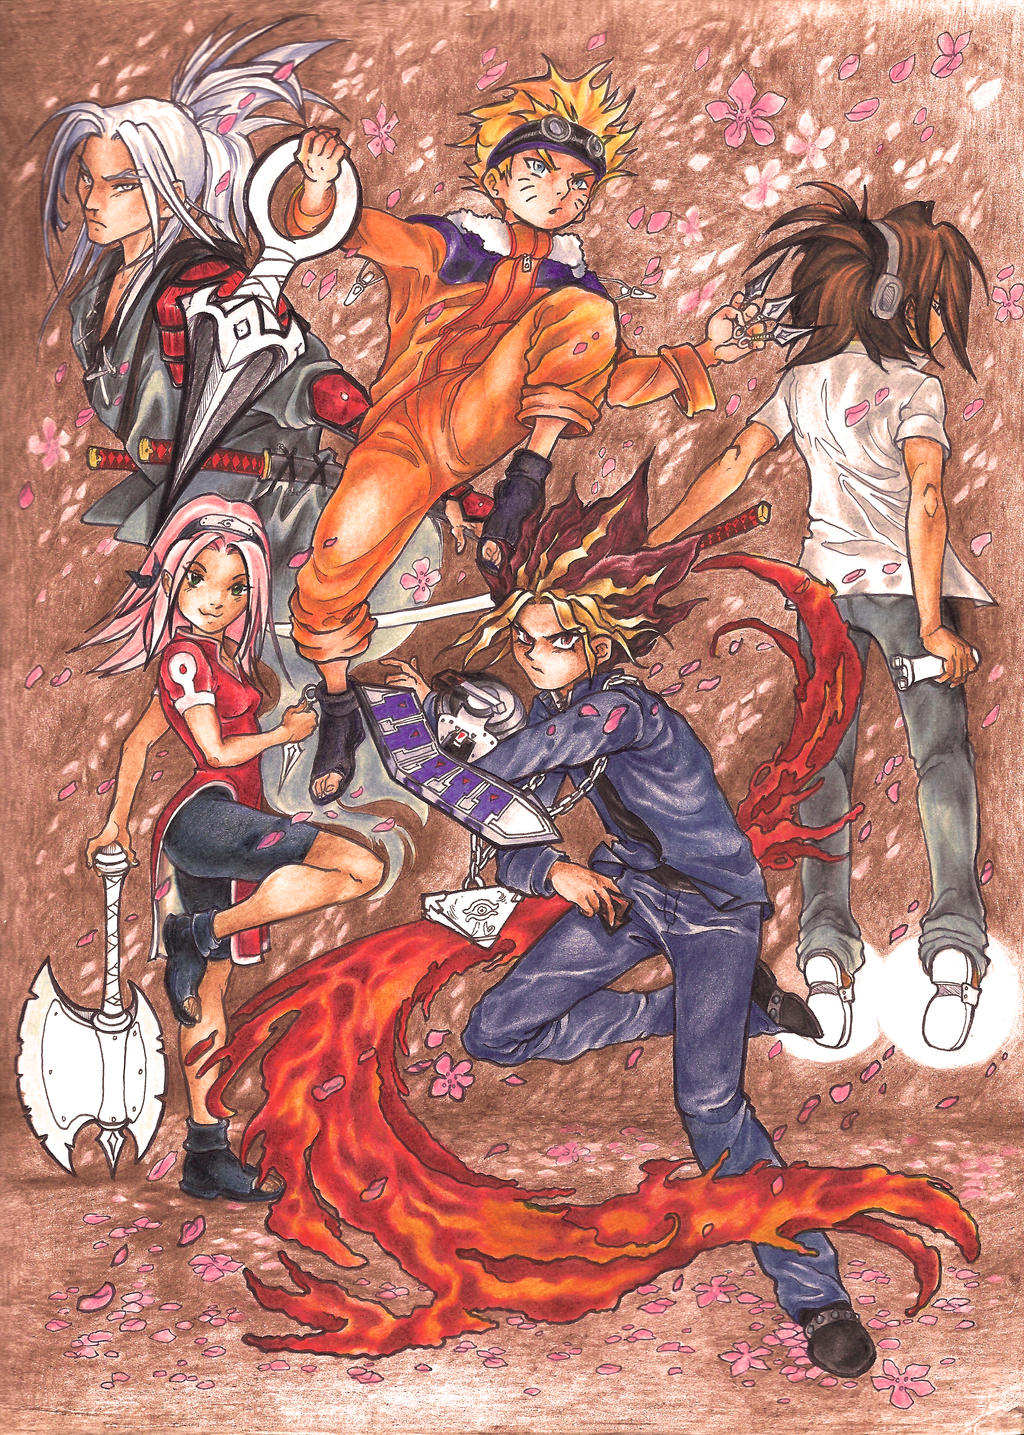 Manga Super Six 1 (2006) by La-Nora